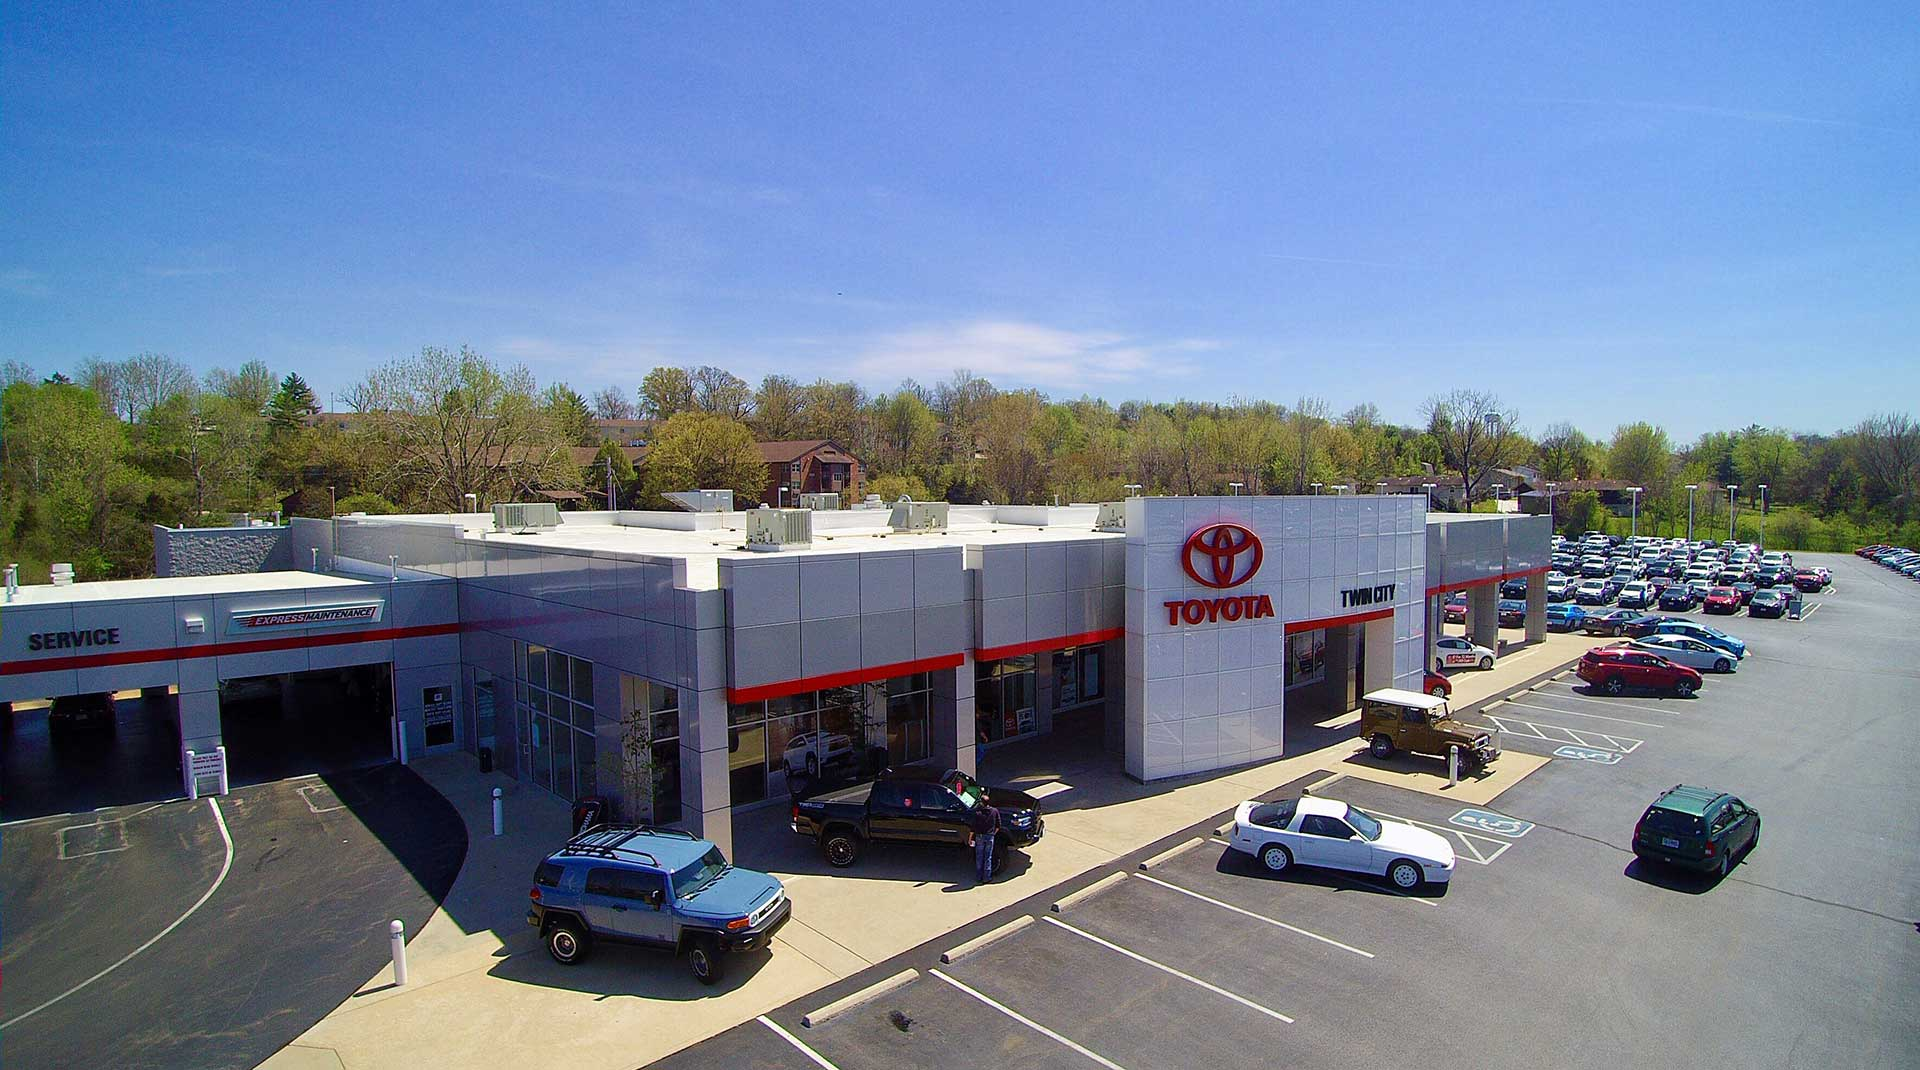 Toyota Dealer Herculaneum Mo New Used Cars For Sale Near St